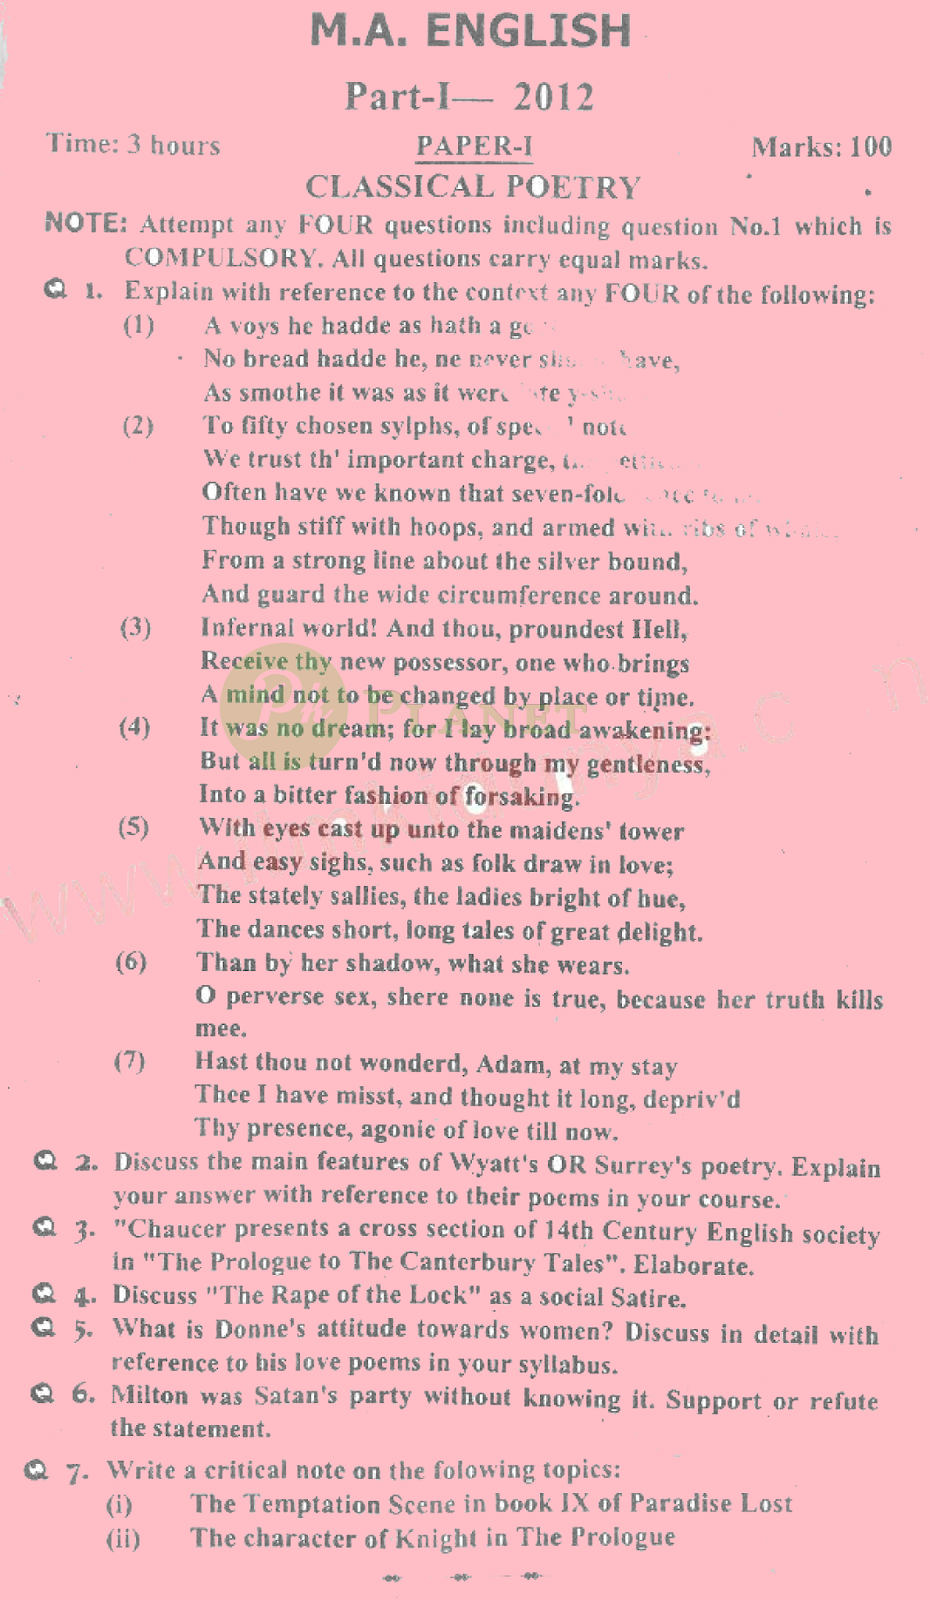 ma english part 1 past papers punjab university 2012 classical poetry